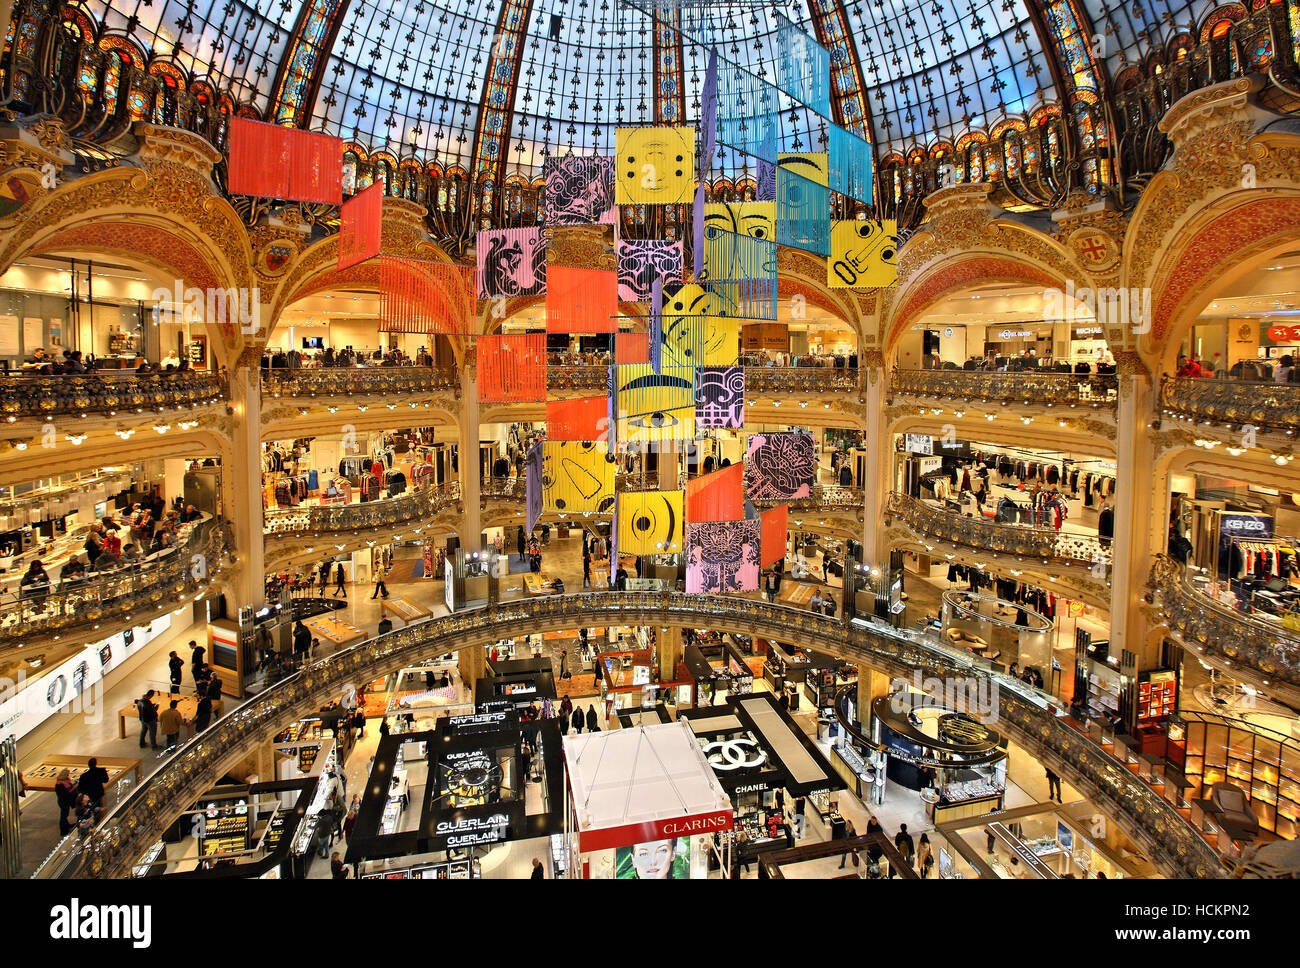 the galeries lafayette the most famous parisienne shopping center